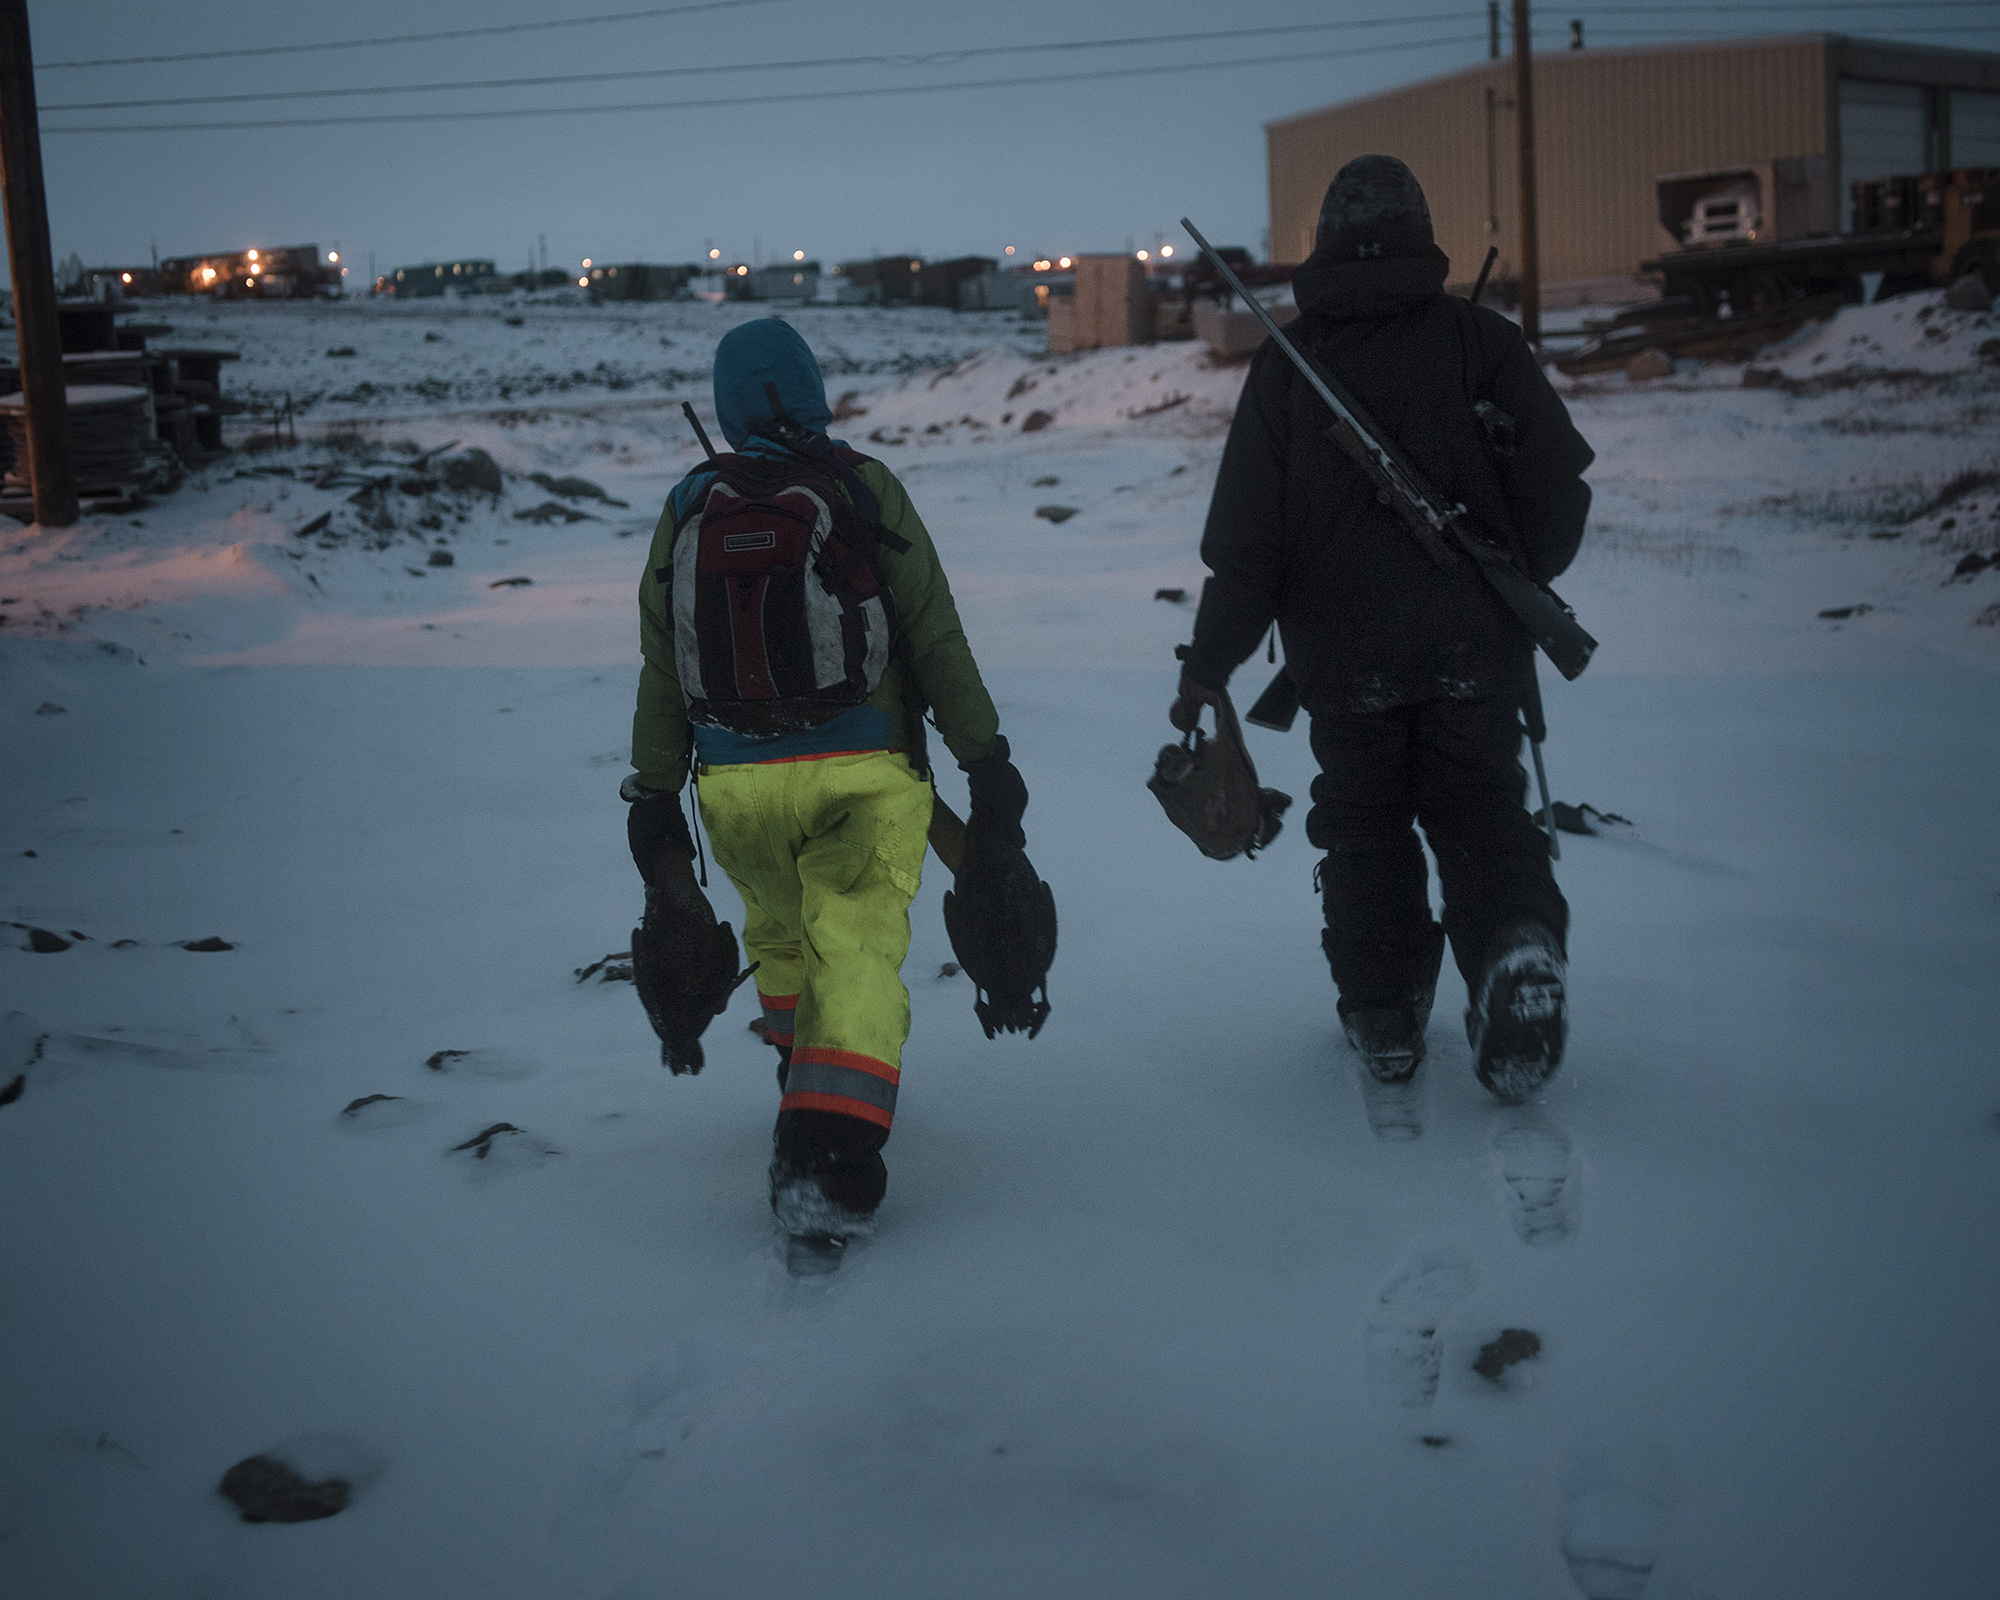 Markoosi and Nanasi Illauq walk home with their catch. The Nunavut Bureau of Statistics reports that the price of food in Clyde River is three times higher than the national average. And hunting is less reliable, because of loud modern boats and shifting water patterns due to climate change. Many hunters return home after a long day with an empty gas tank and no game to show for it. As a result of this, half of the population does not get enough food each day. (Camilla Andersen/GroundTruth)